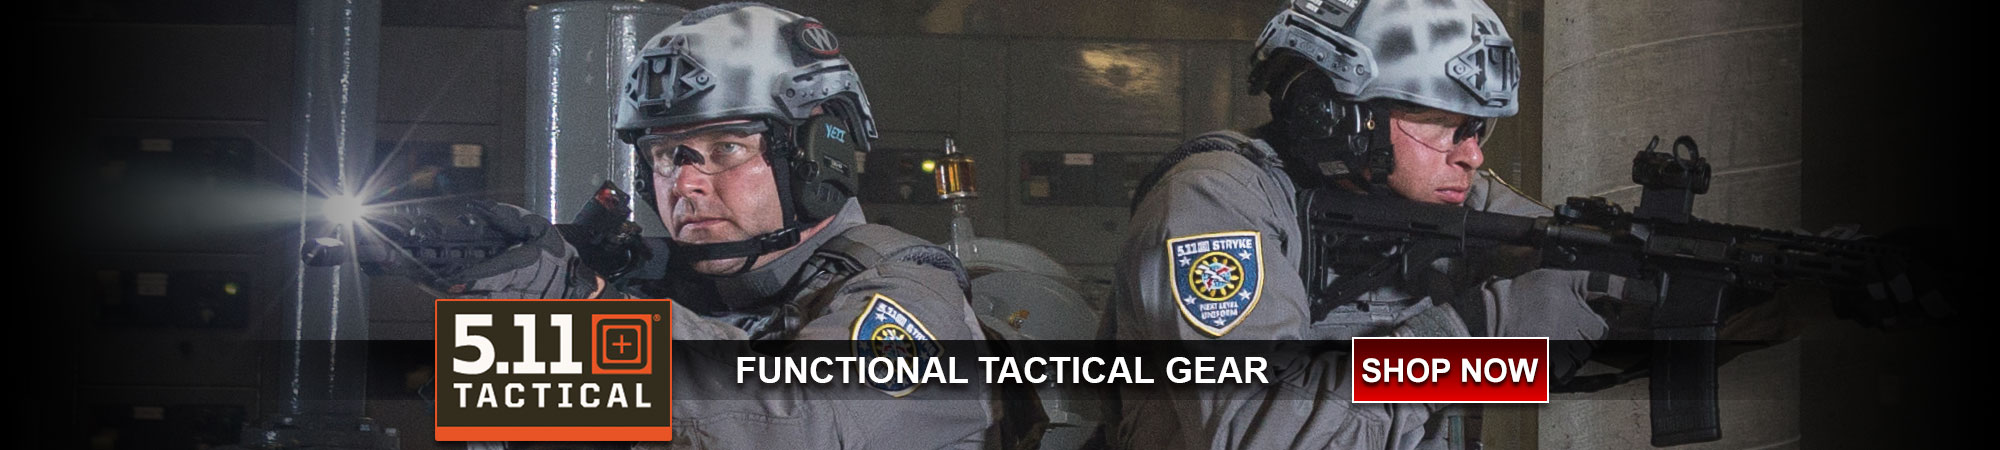 511 Tactical Gear and Apparel an